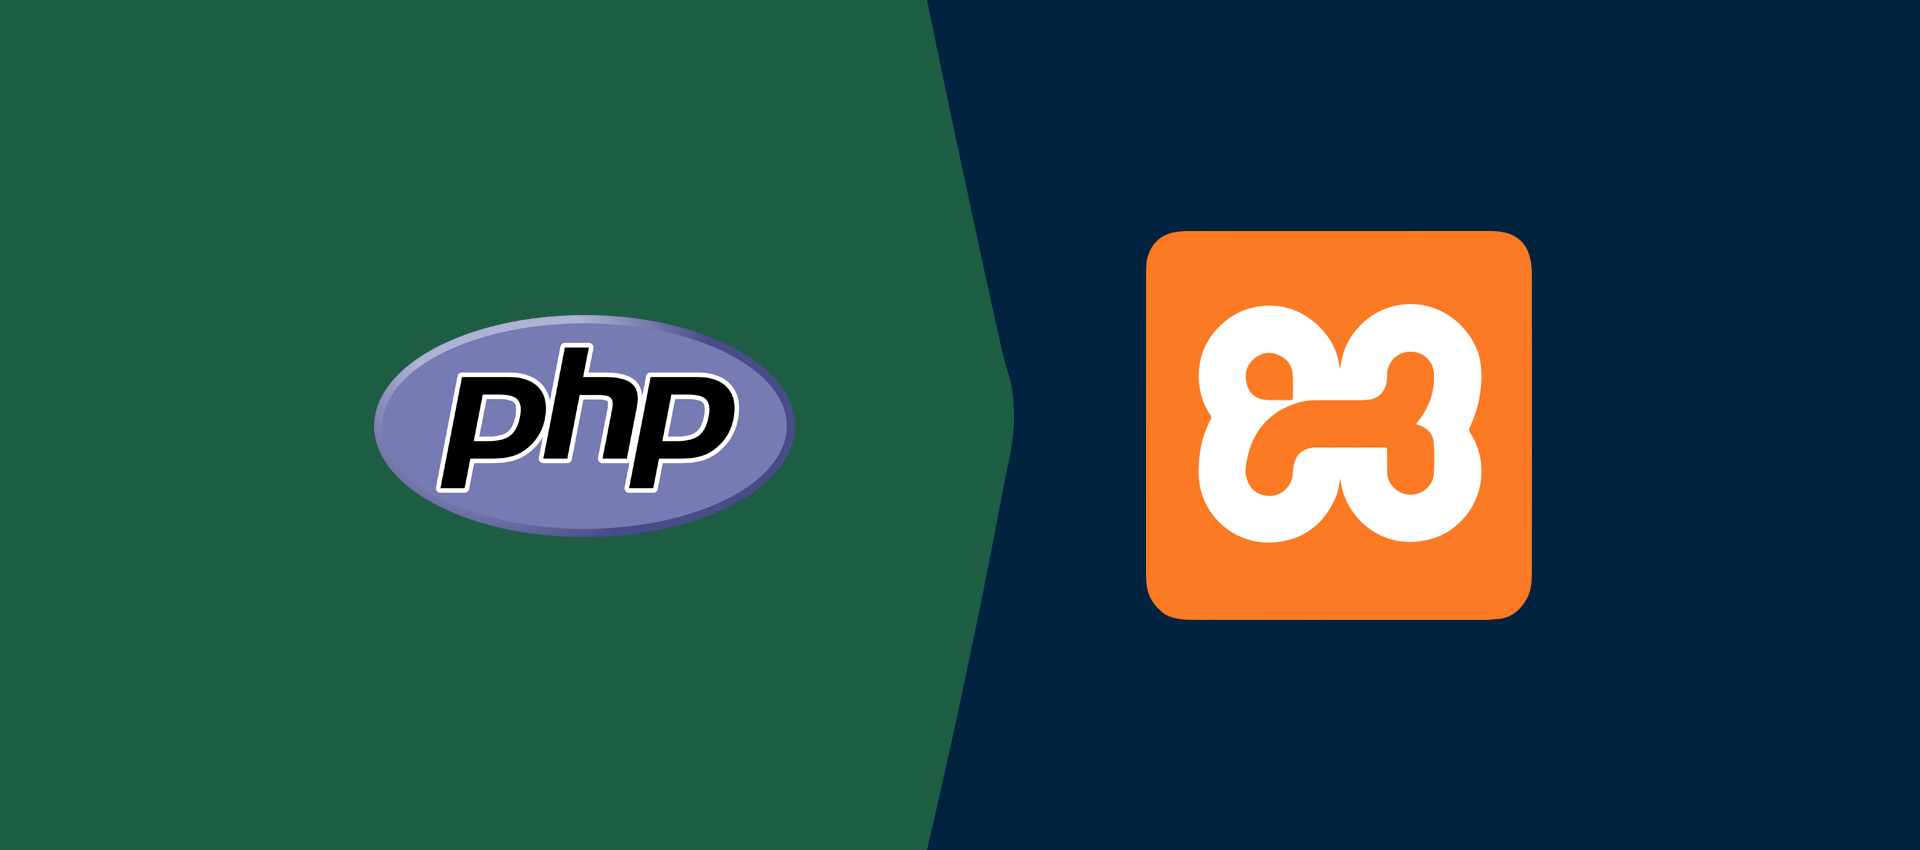 How To Install XAMPP With PHP 8 On Windows 10